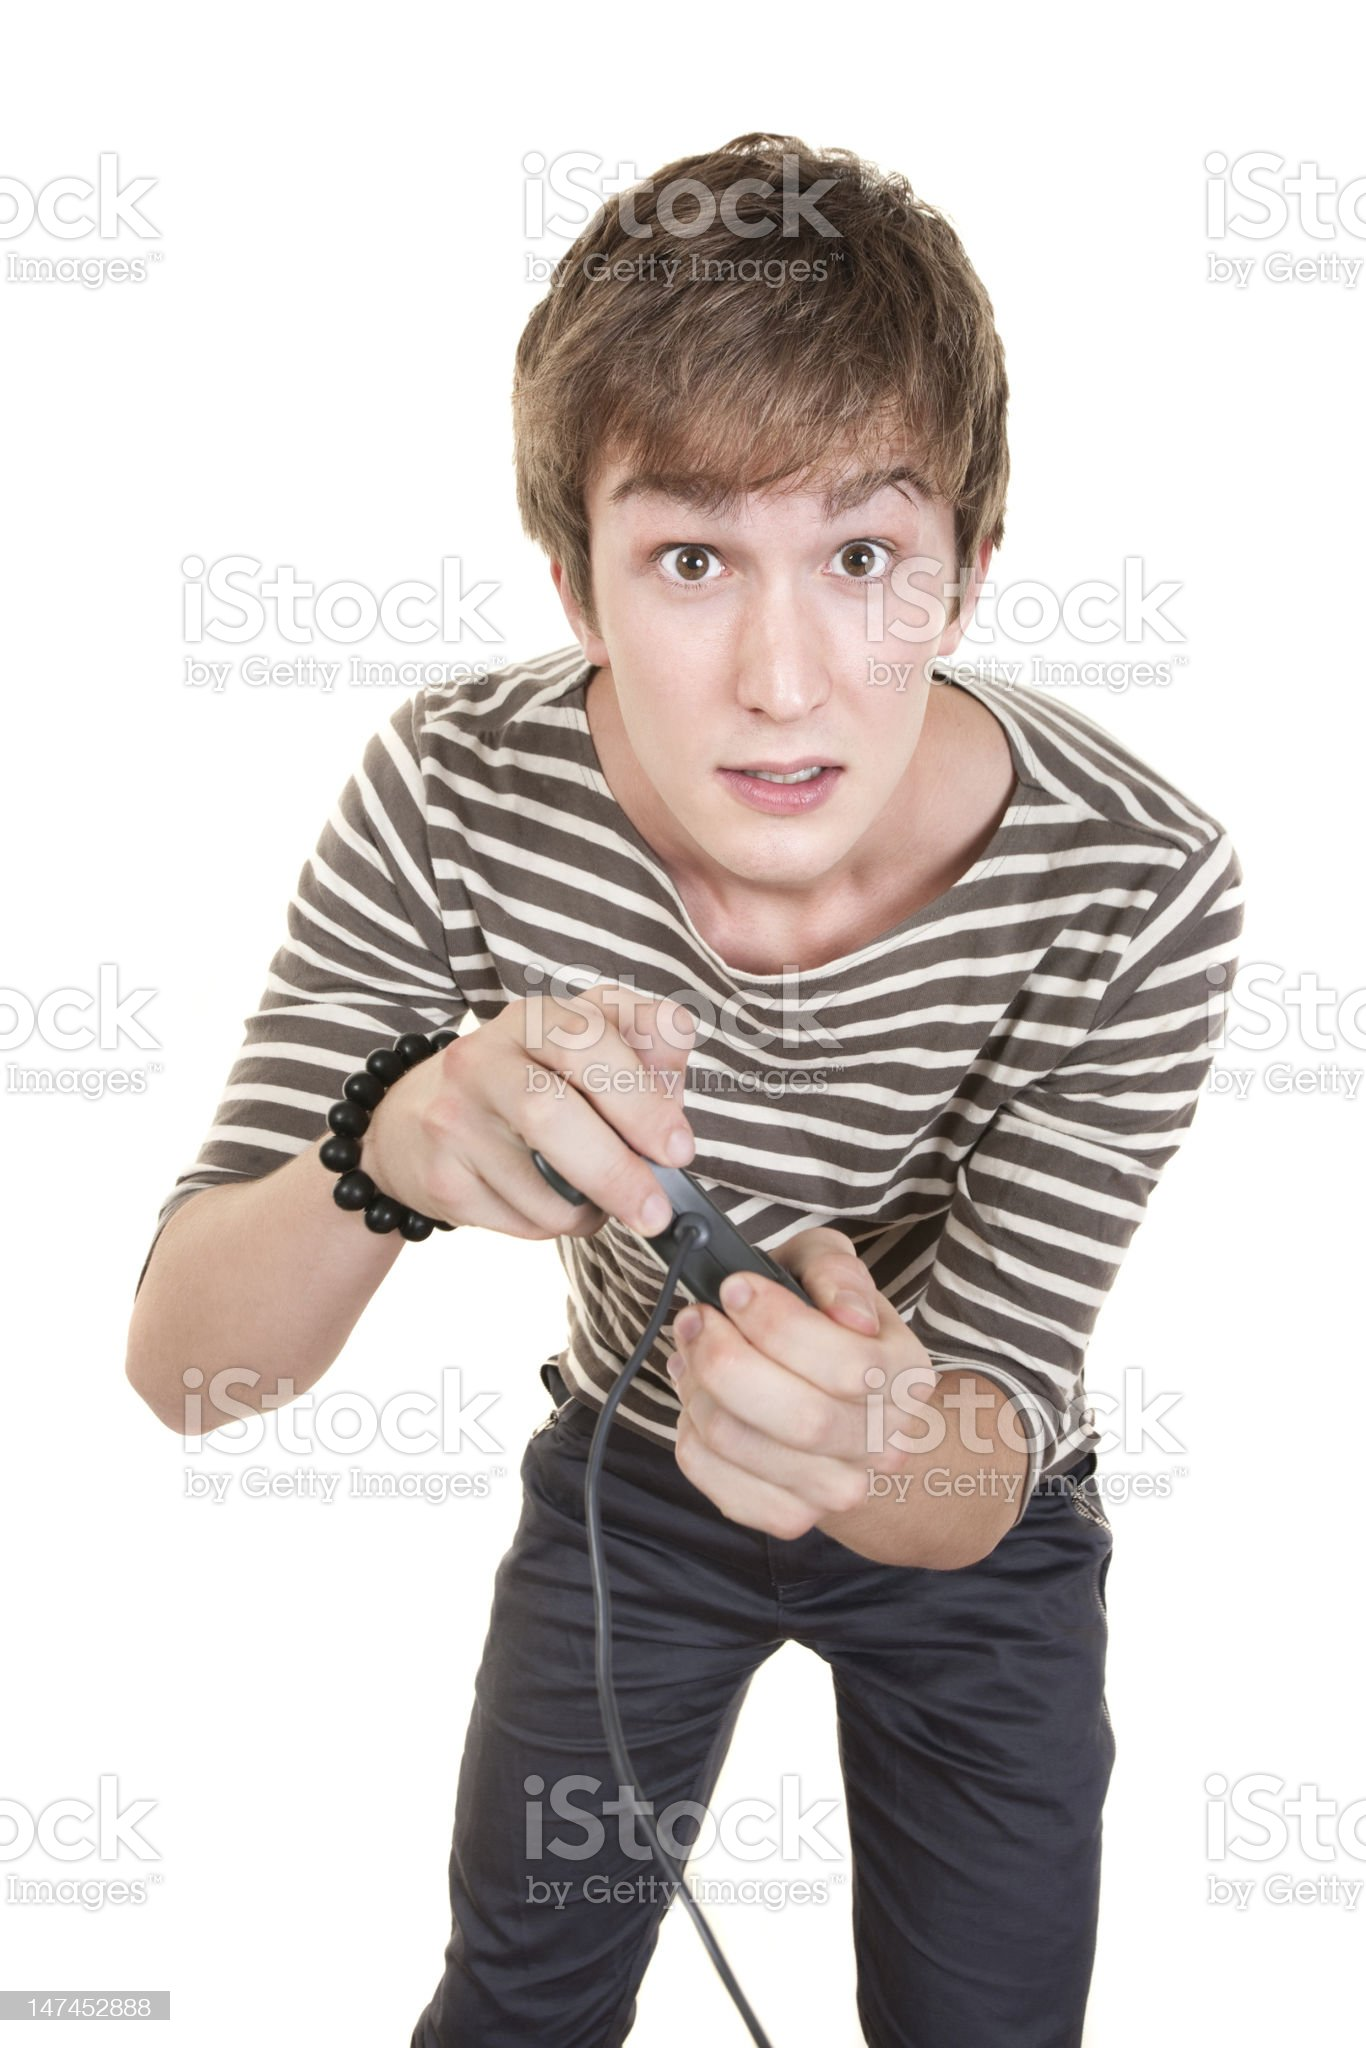 Teen With Game Controller royalty-free stock photo